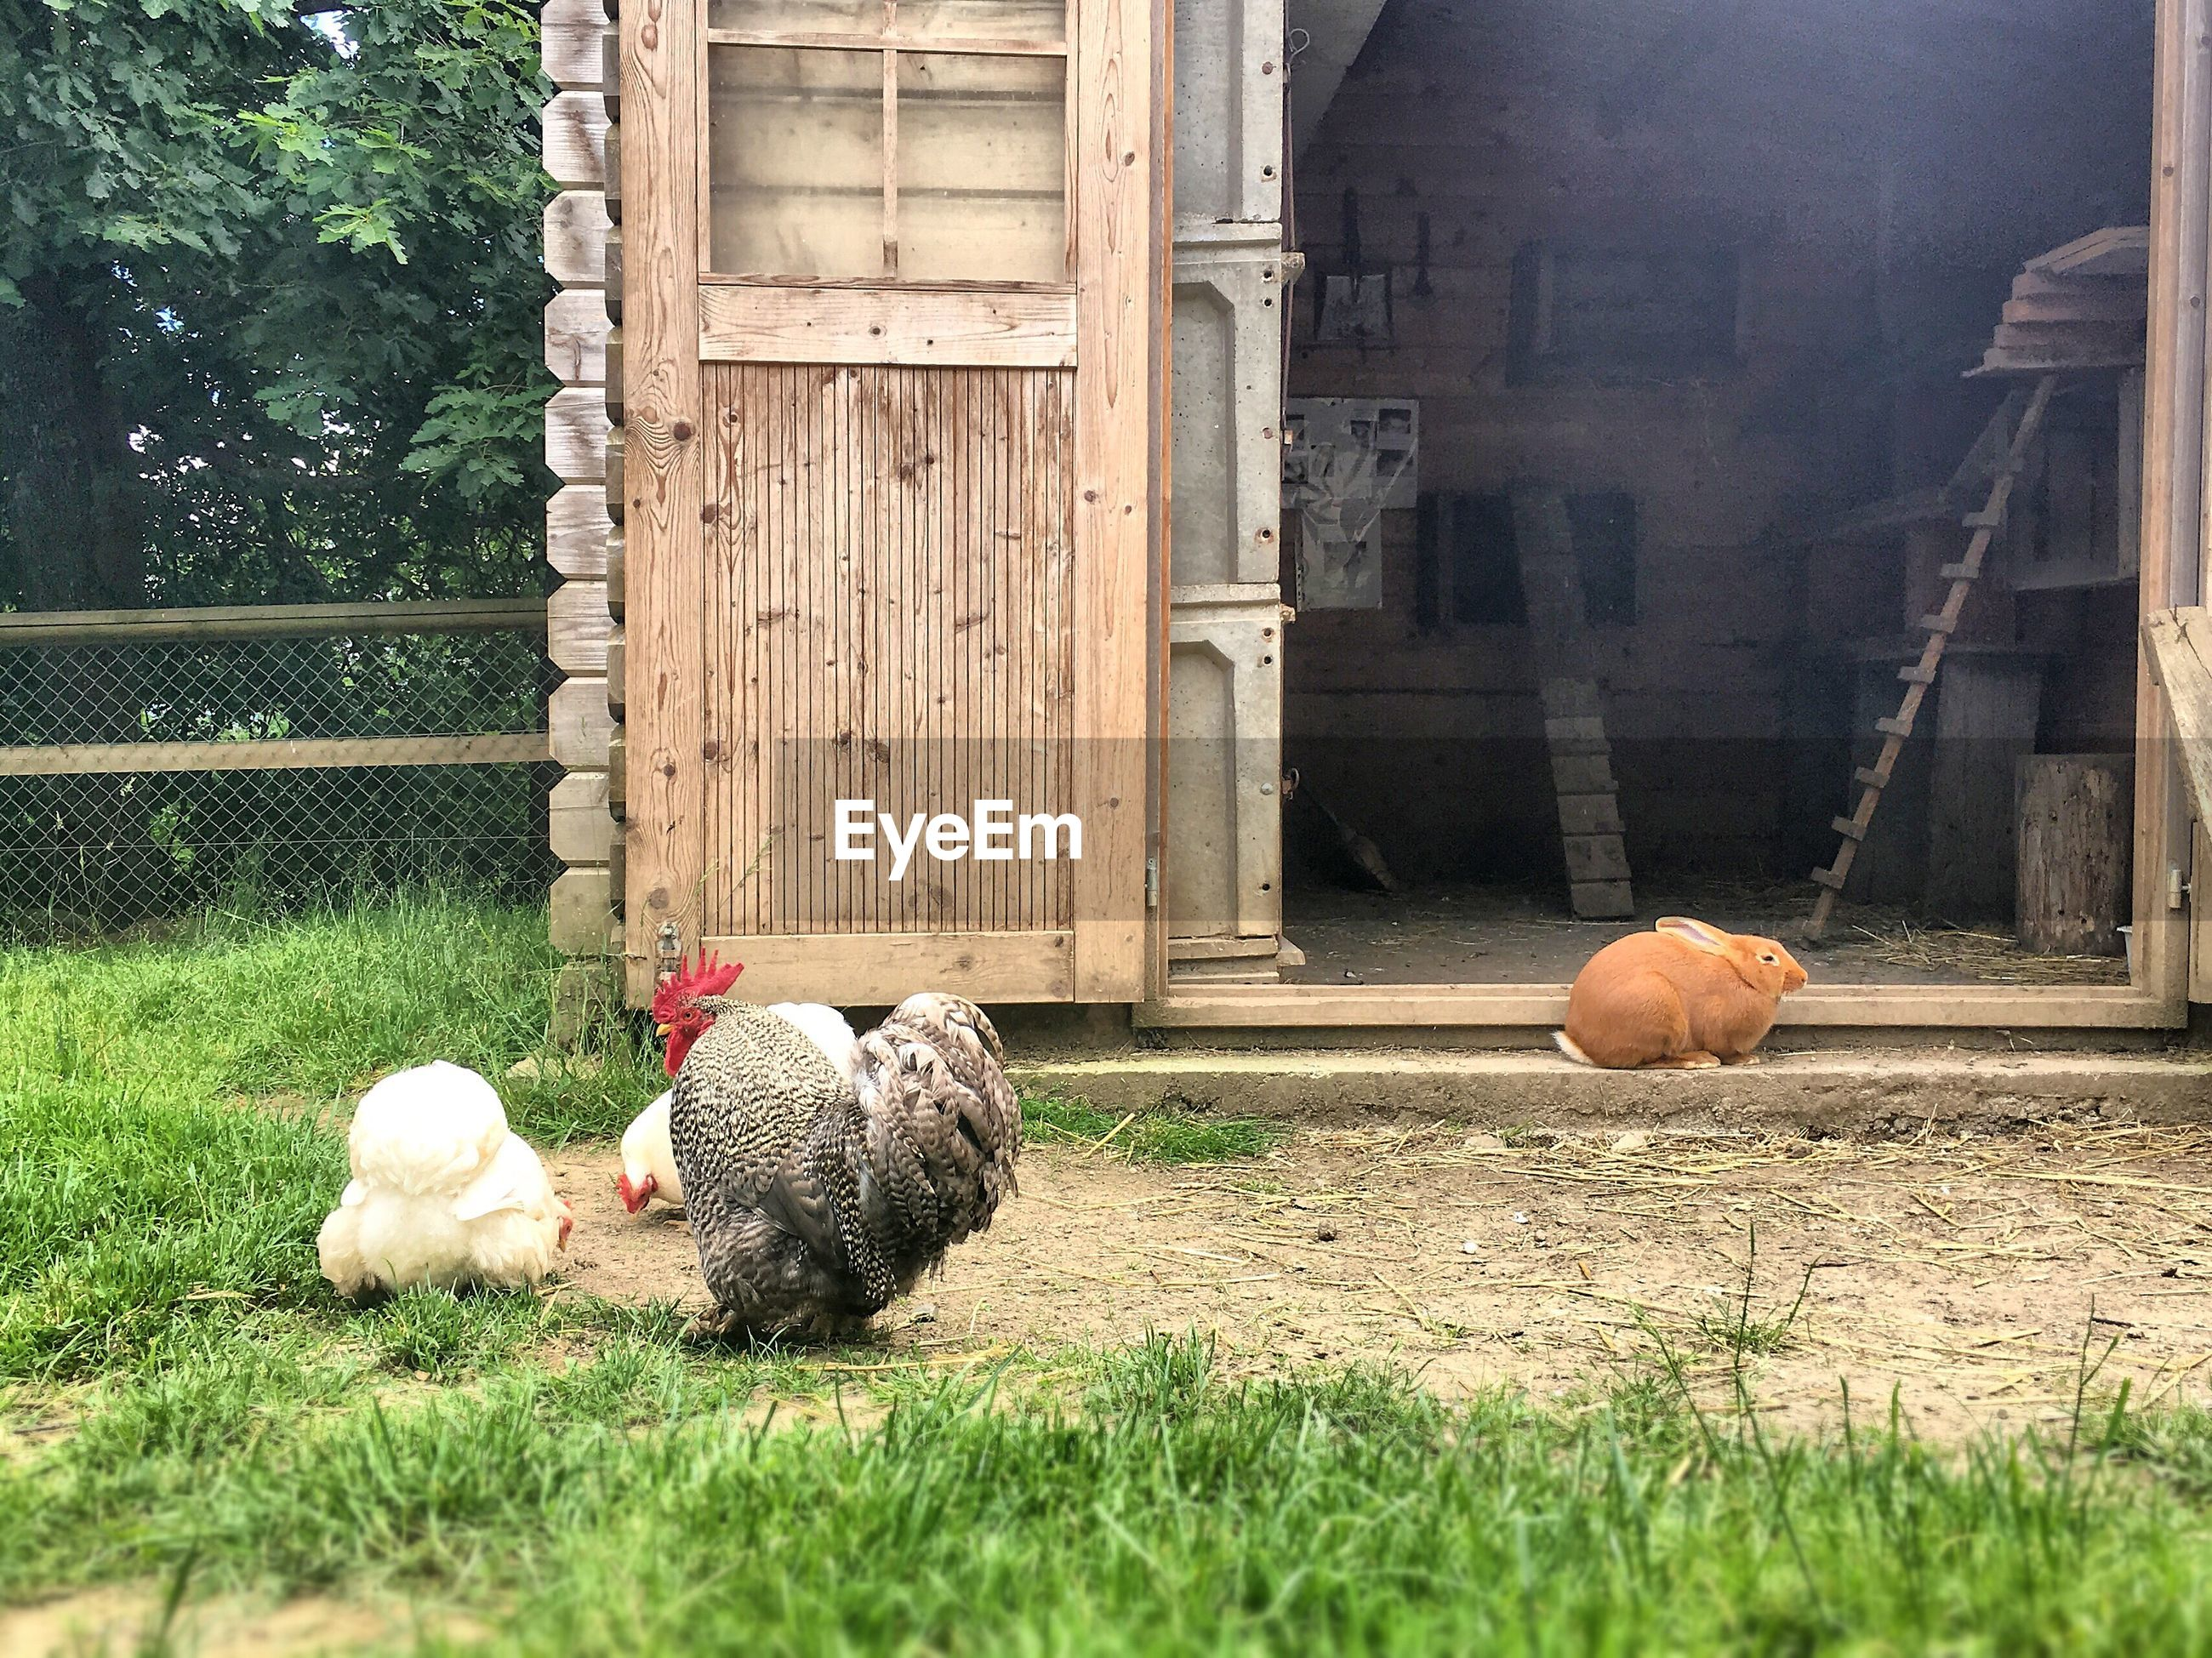 Free range chickens and rabbit by barn at farm